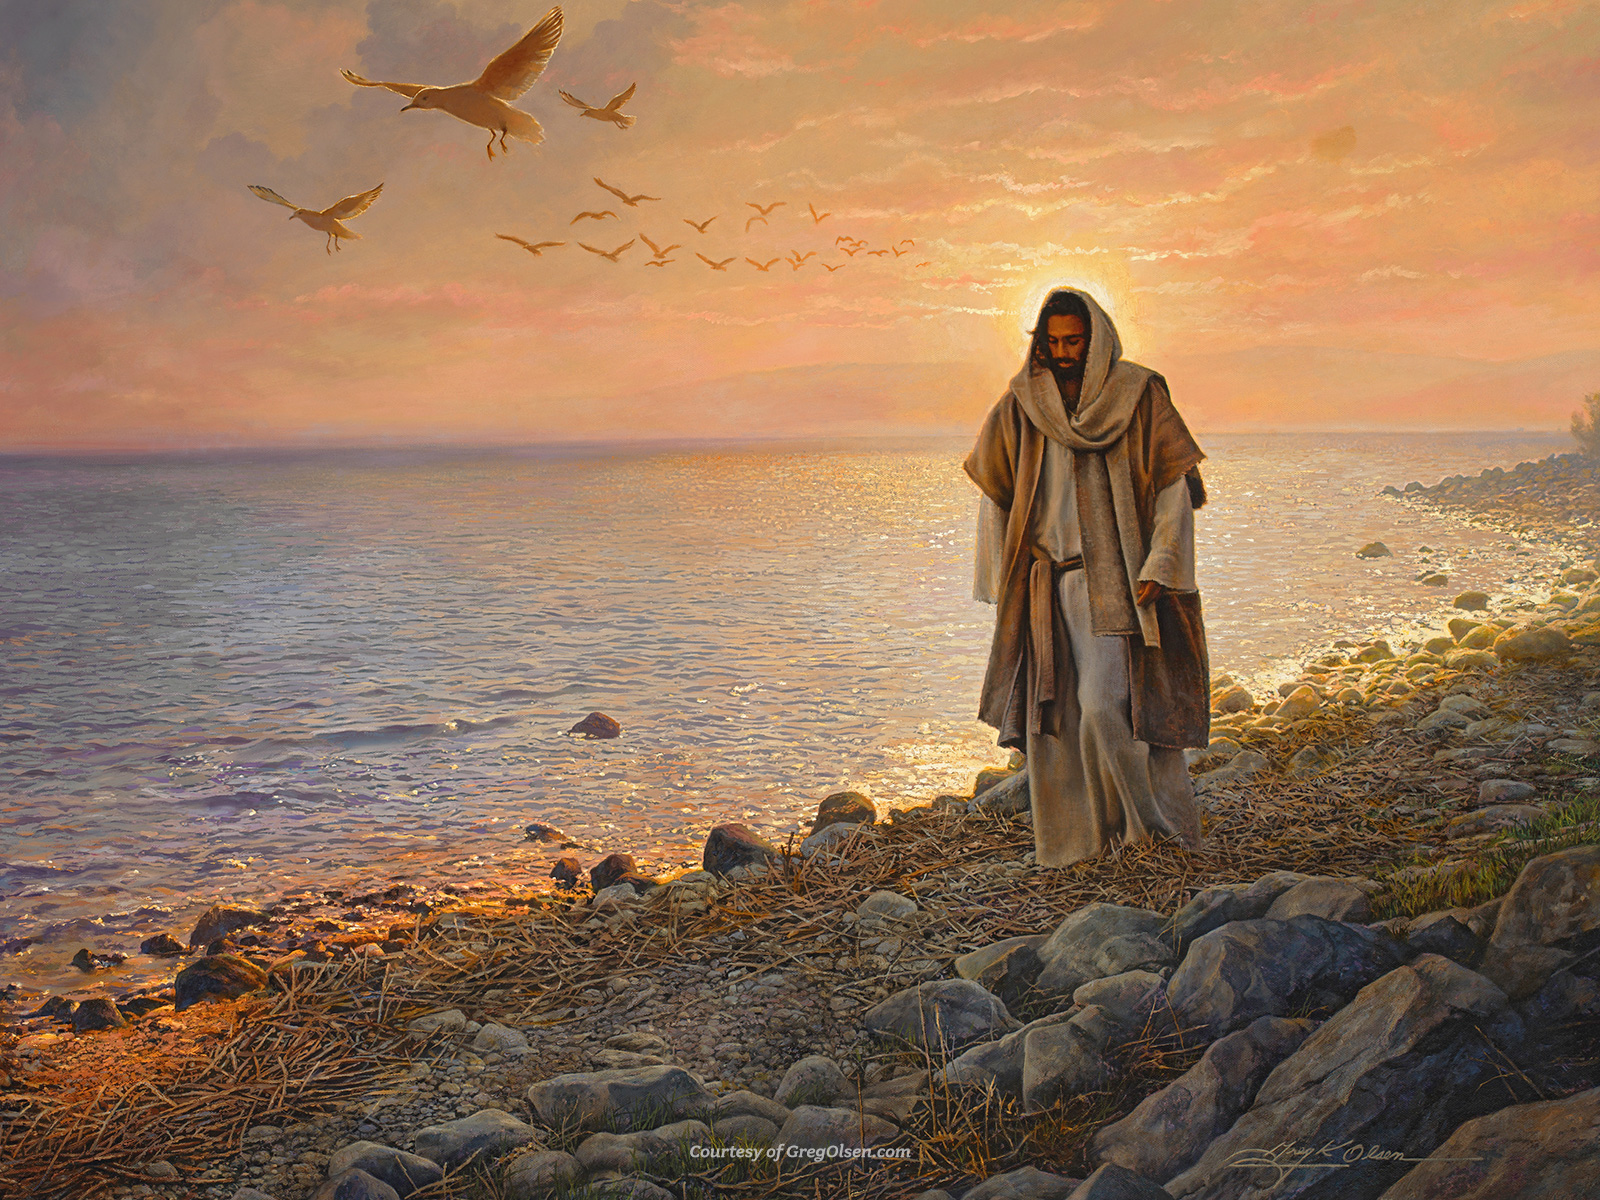 Image by Greg Olsen - Used with Permission GregOlsen.com